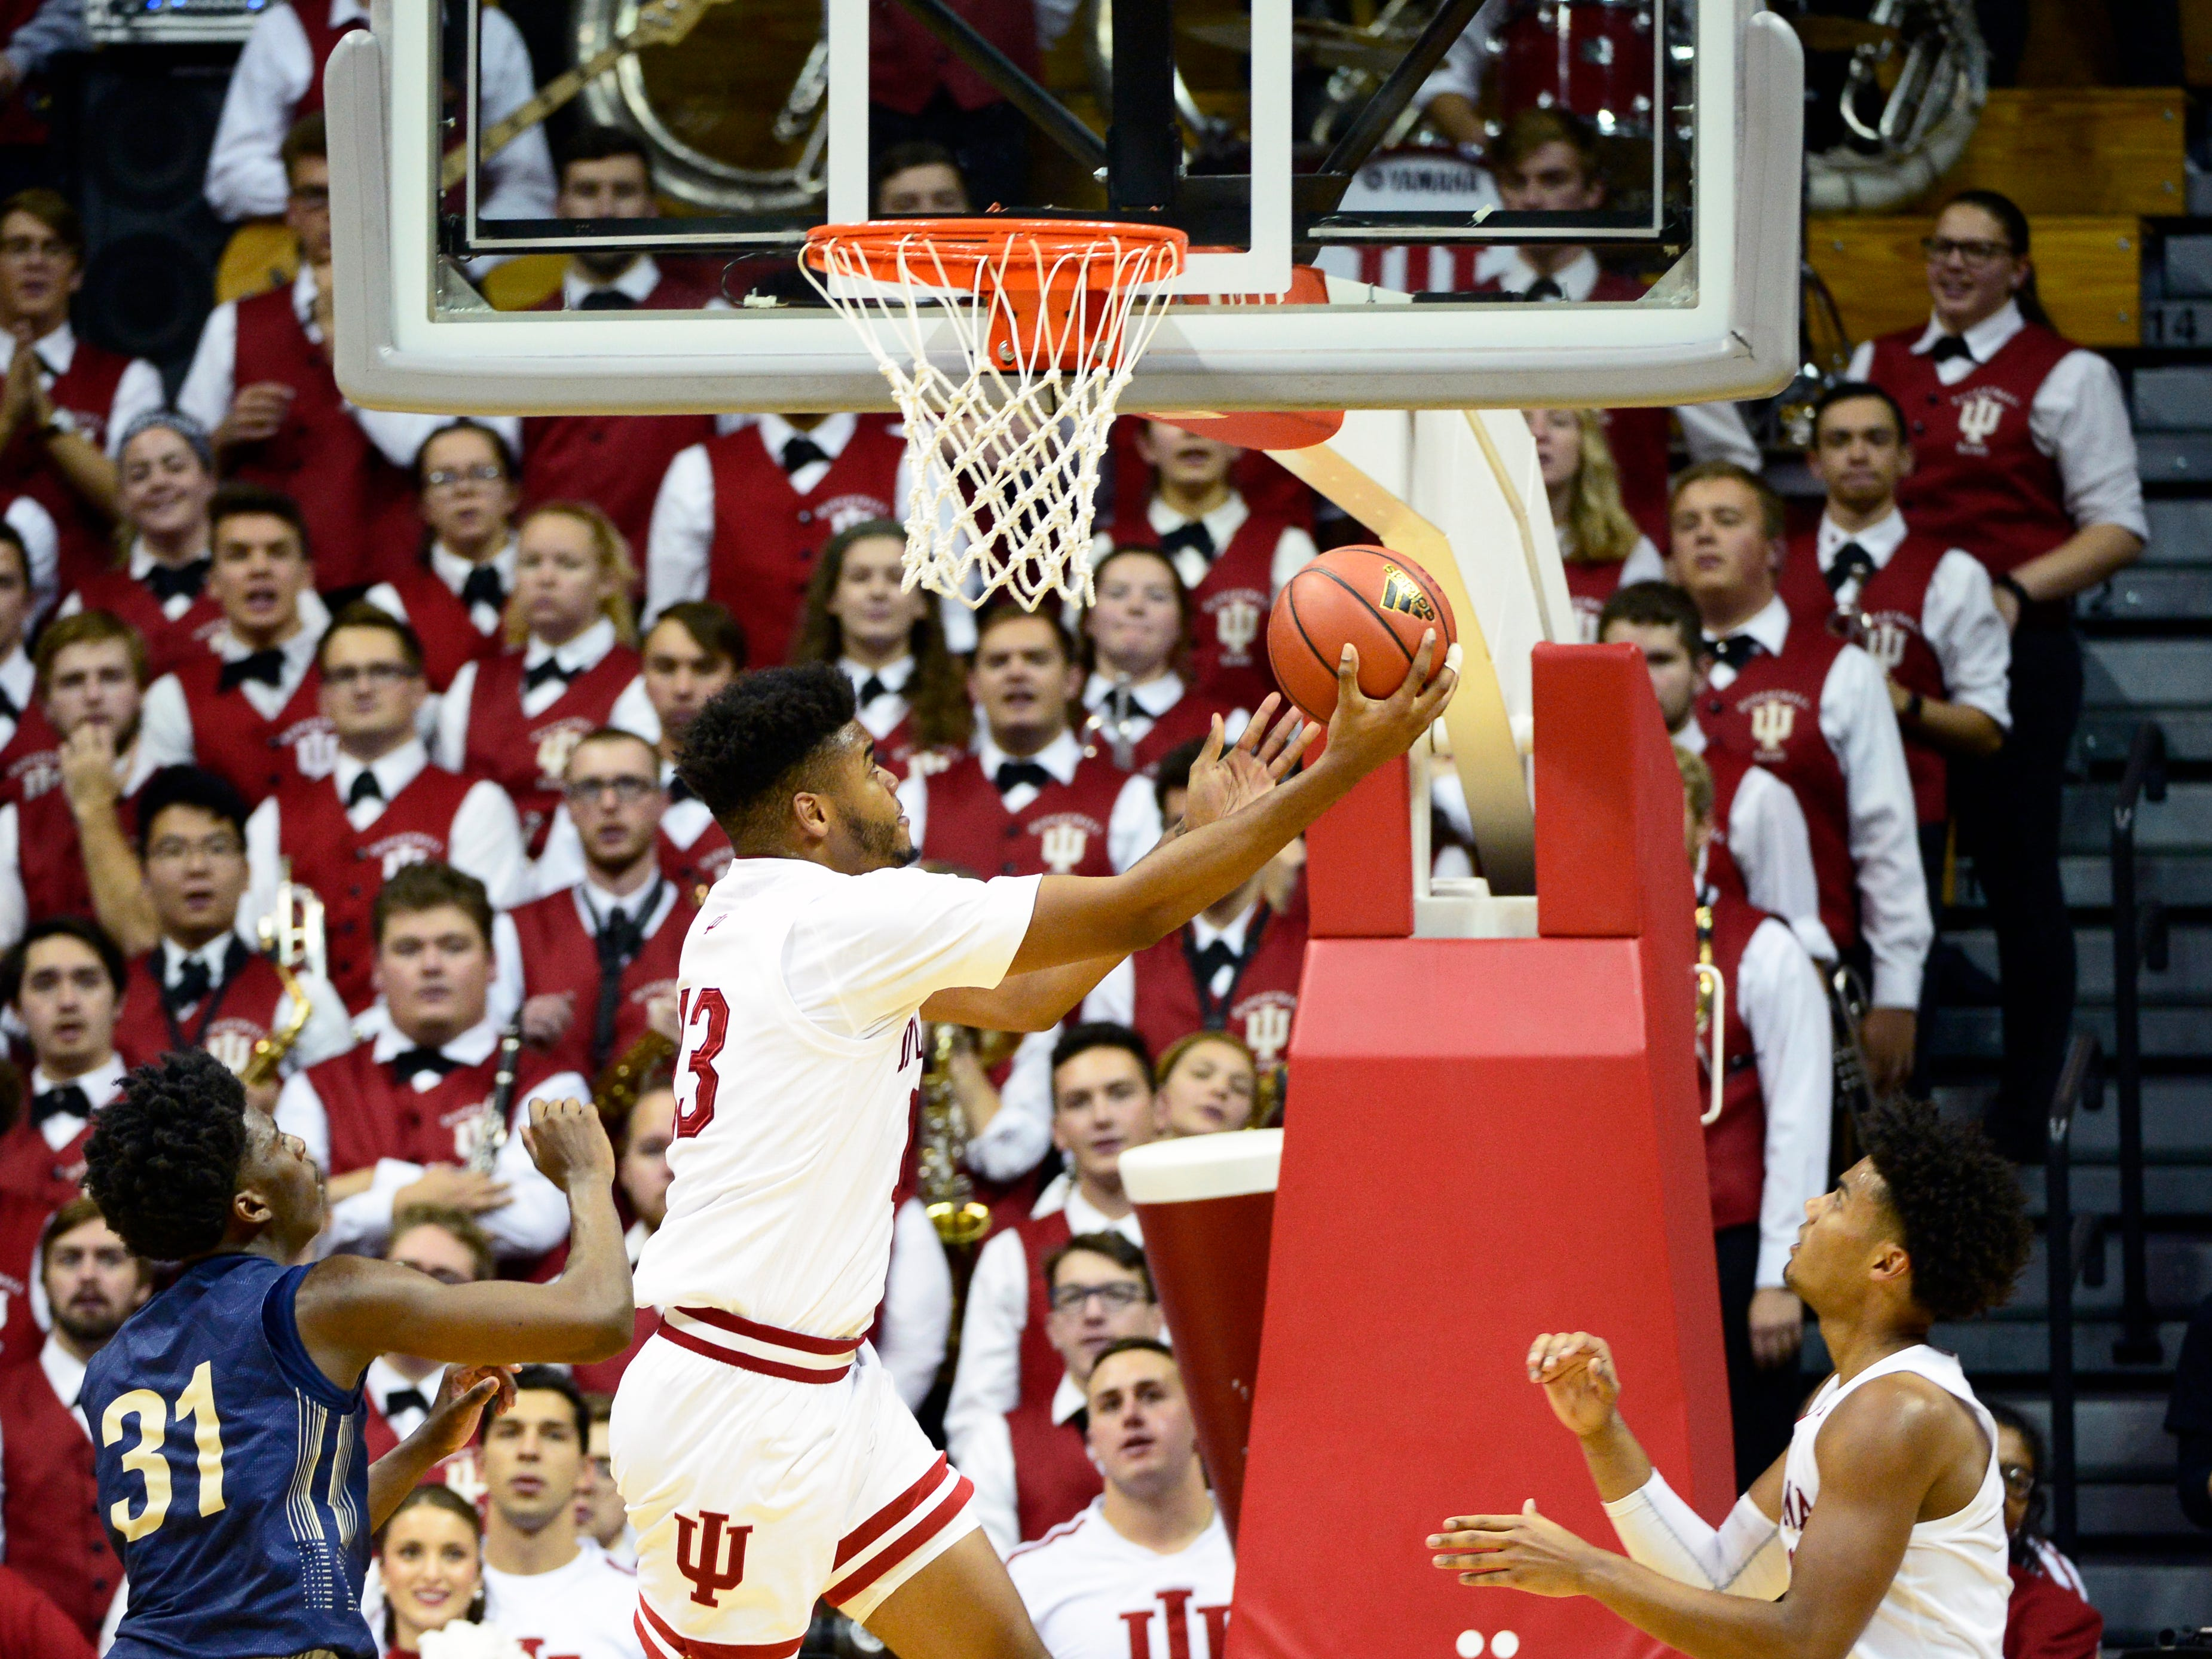 Indiana Hoosiers forward Juwan Morgan (13) goes to the basket during the game against Montana State at Simon Skjodt Assembly Hall in Bloomington, Ind., on Friday, Nov. 9, 2018.